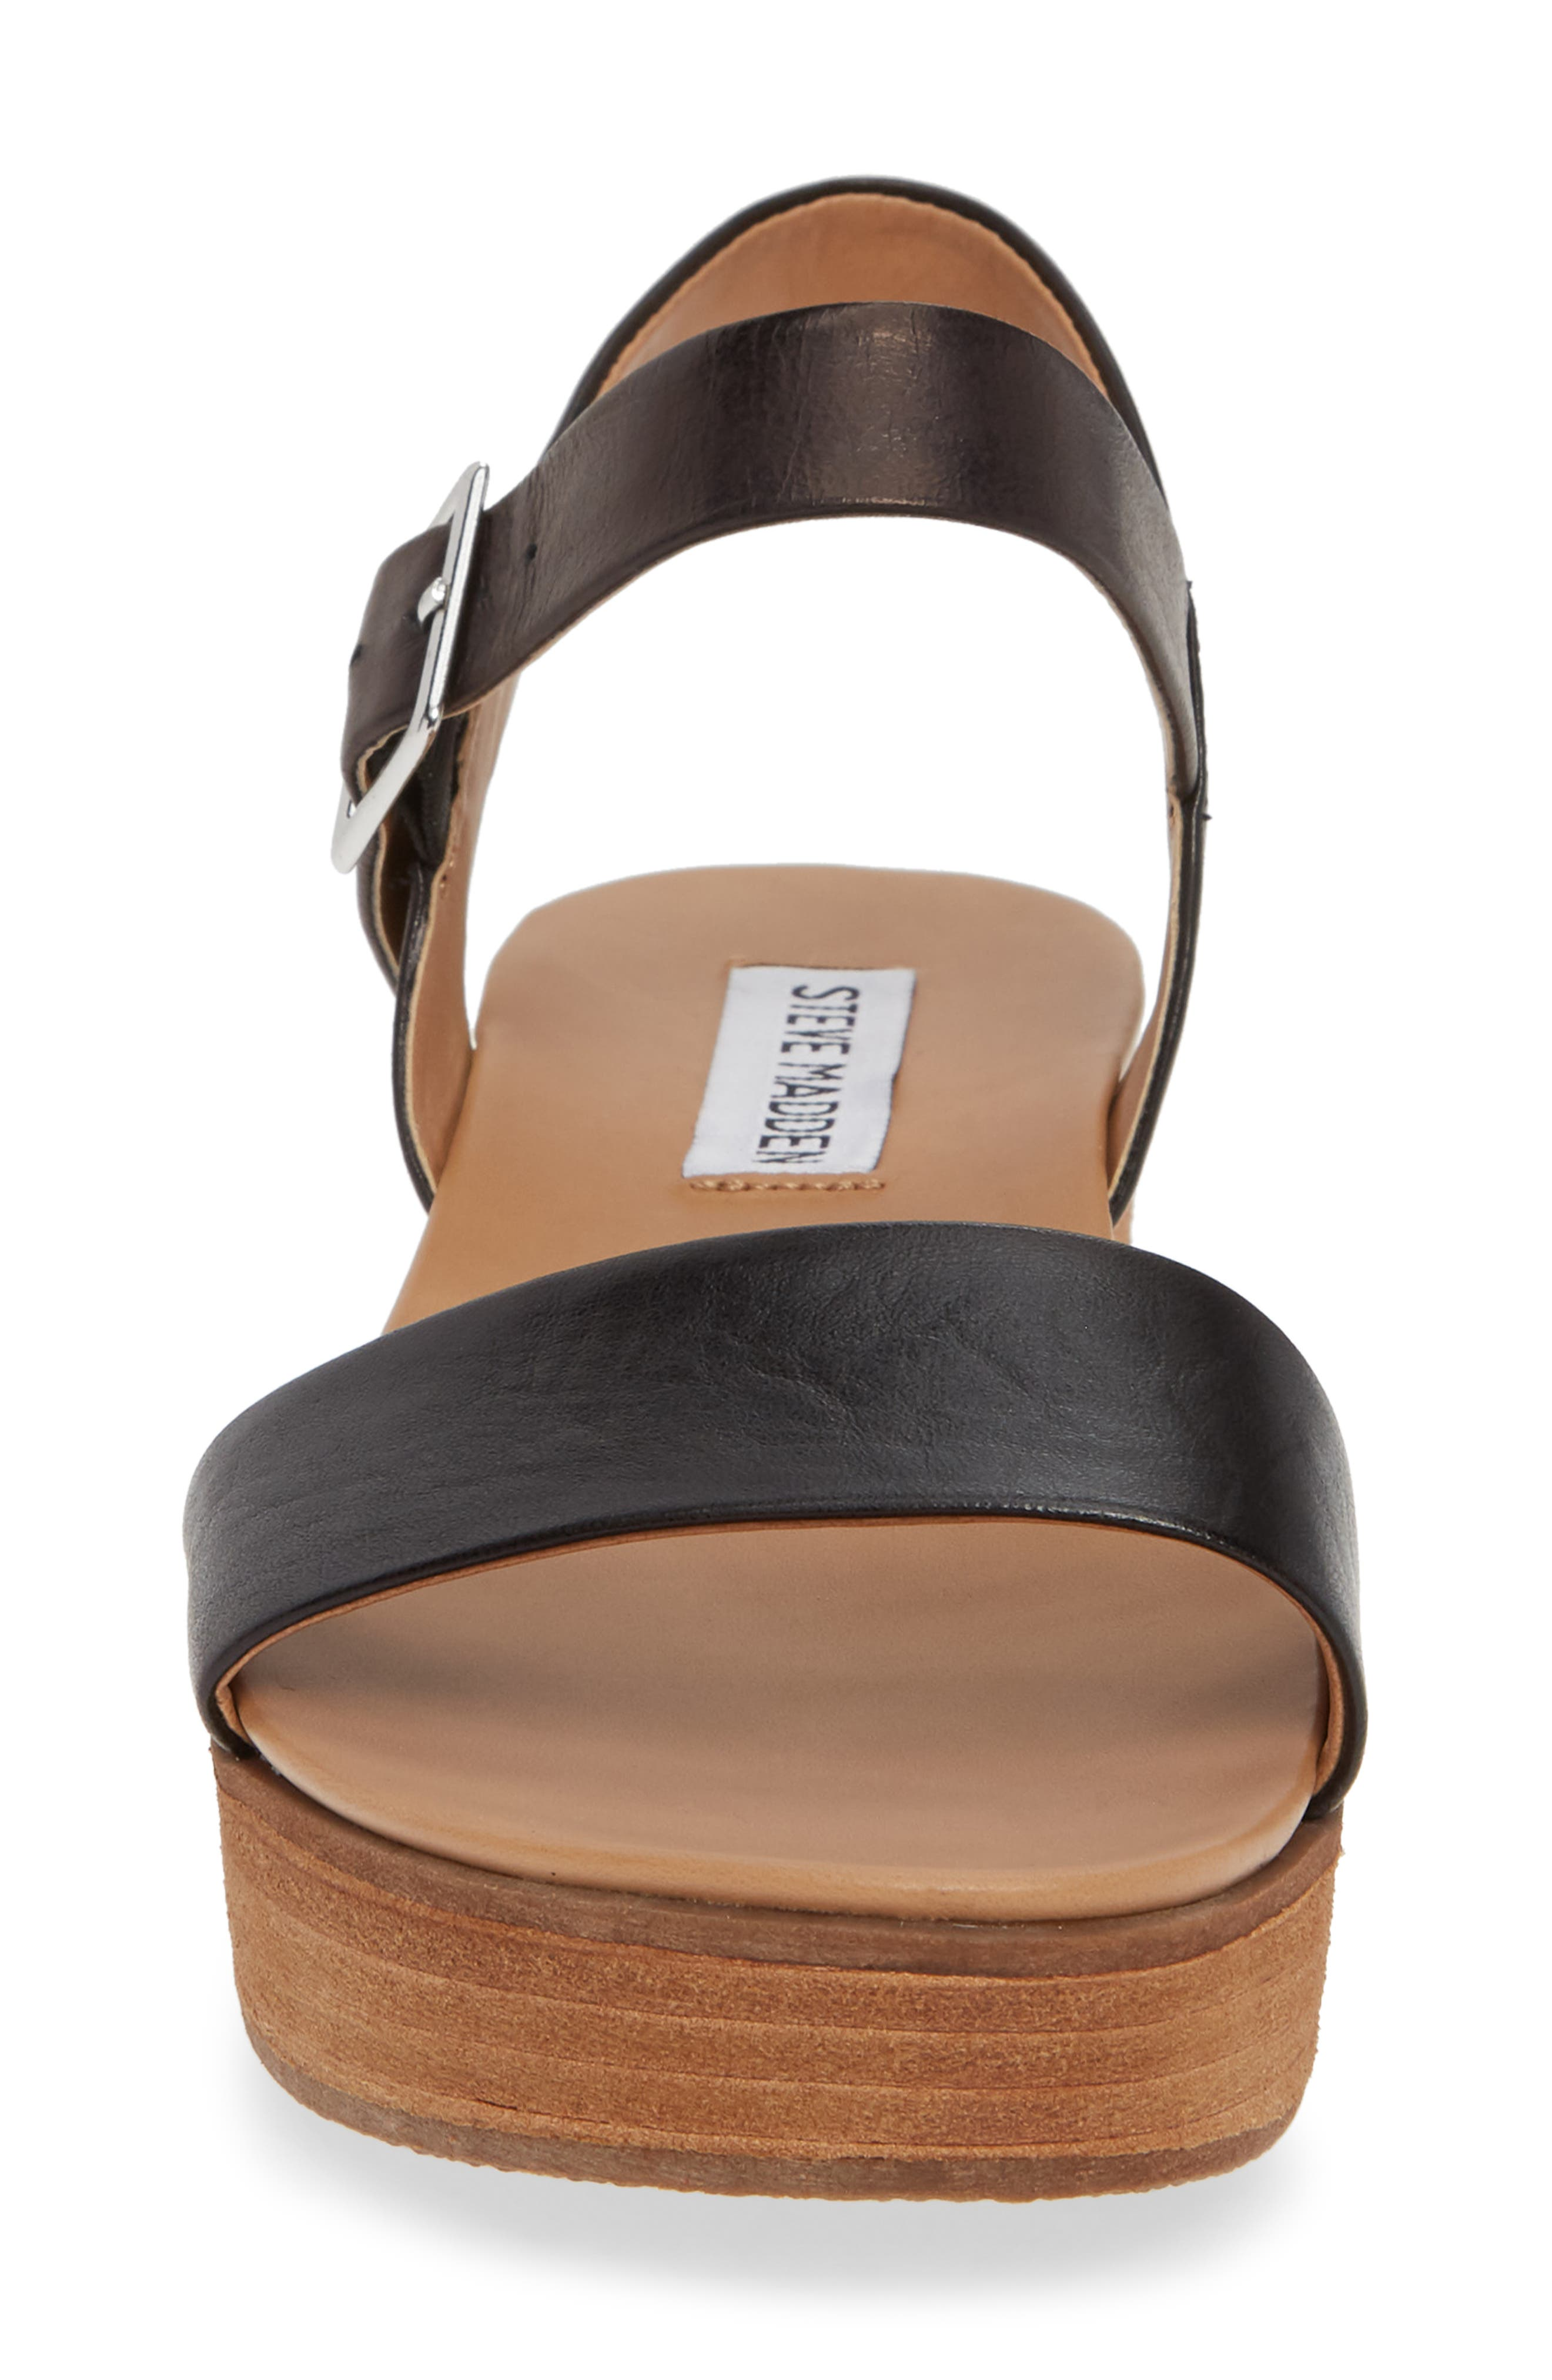 Aida Platform Sandal,                             Alternate thumbnail 4, color,                             BLACK LEATHER